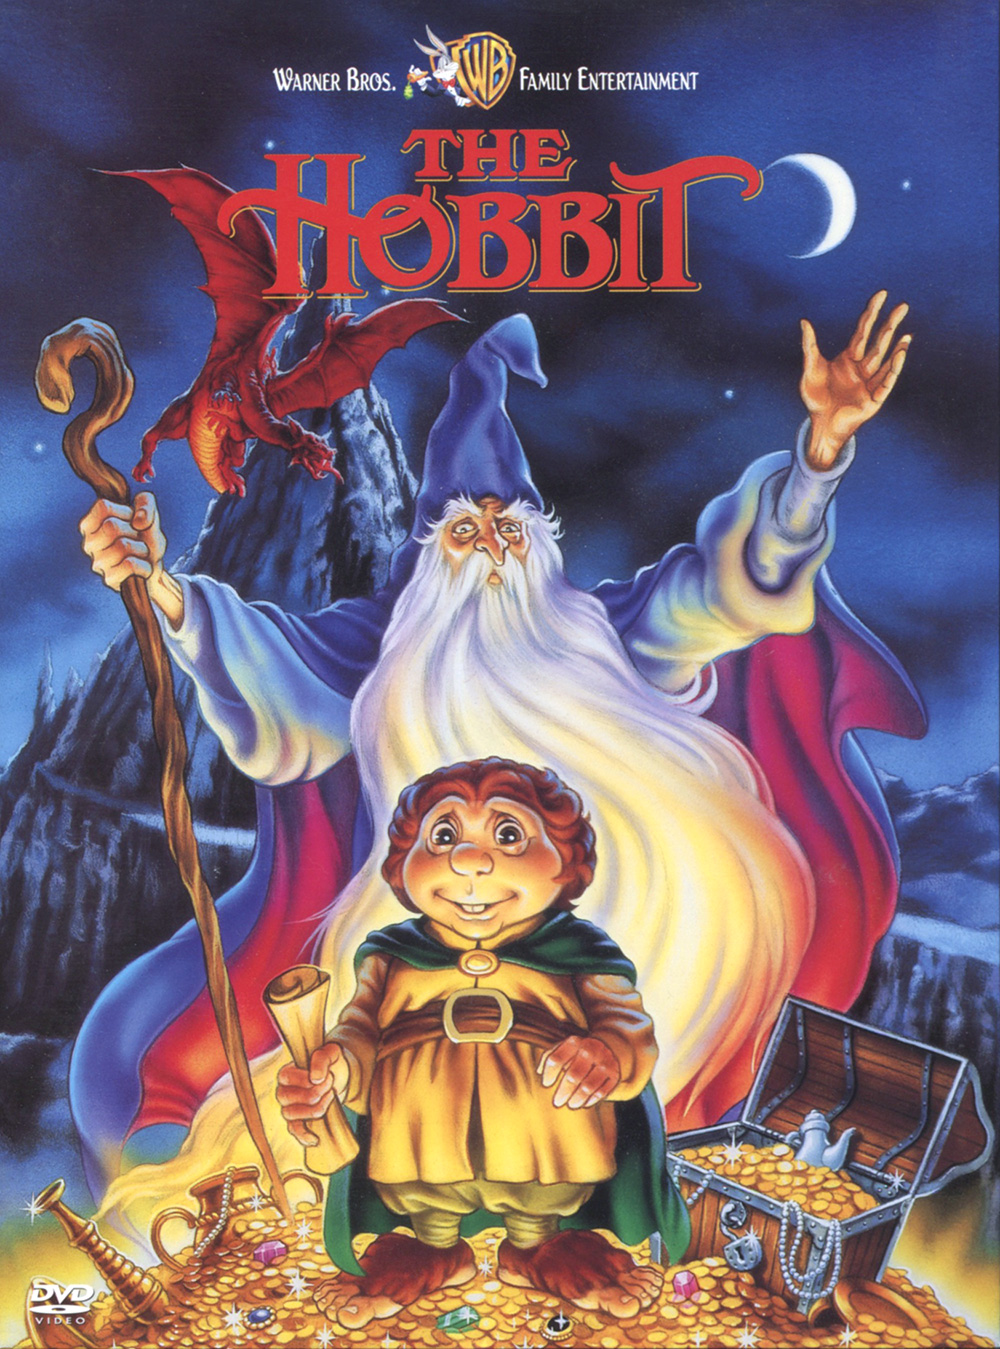 Cover of the DVD release of the 1977 animated film,